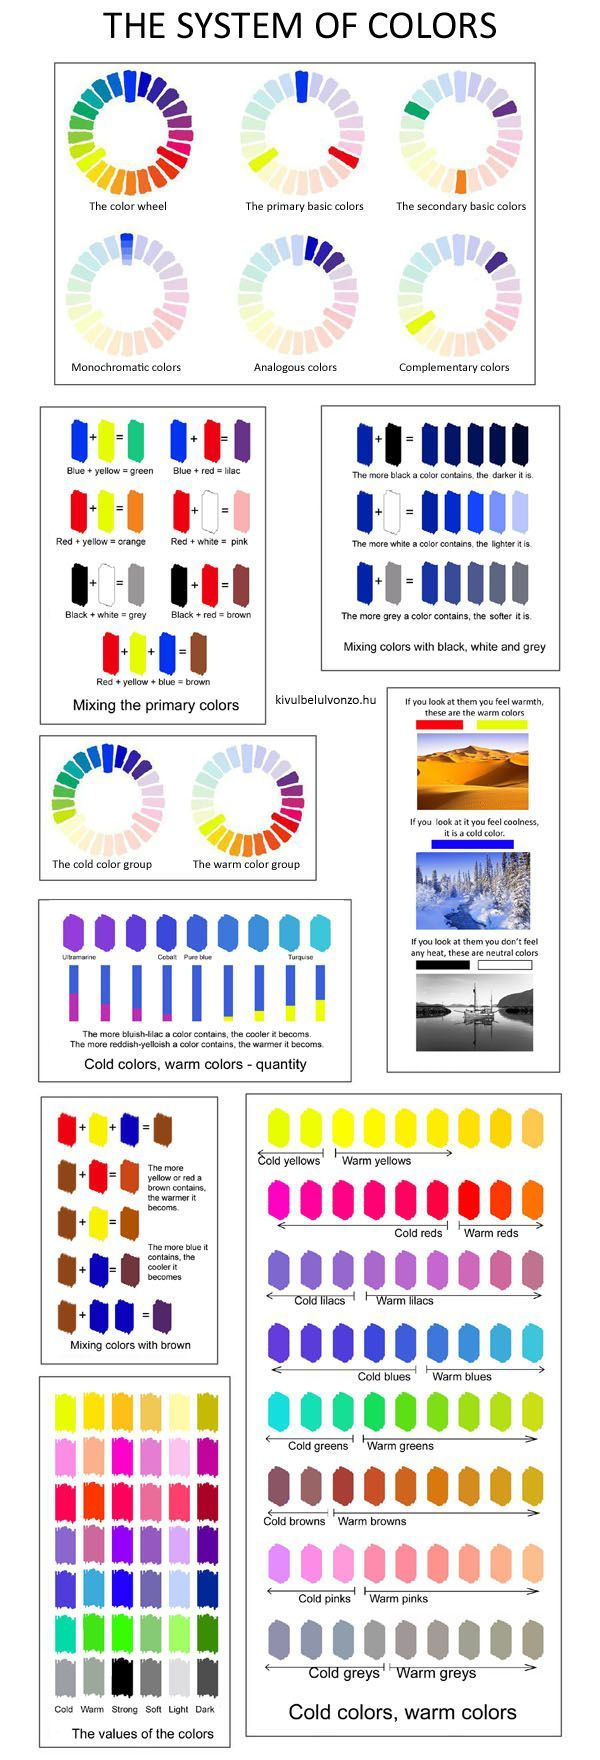 The system of colors